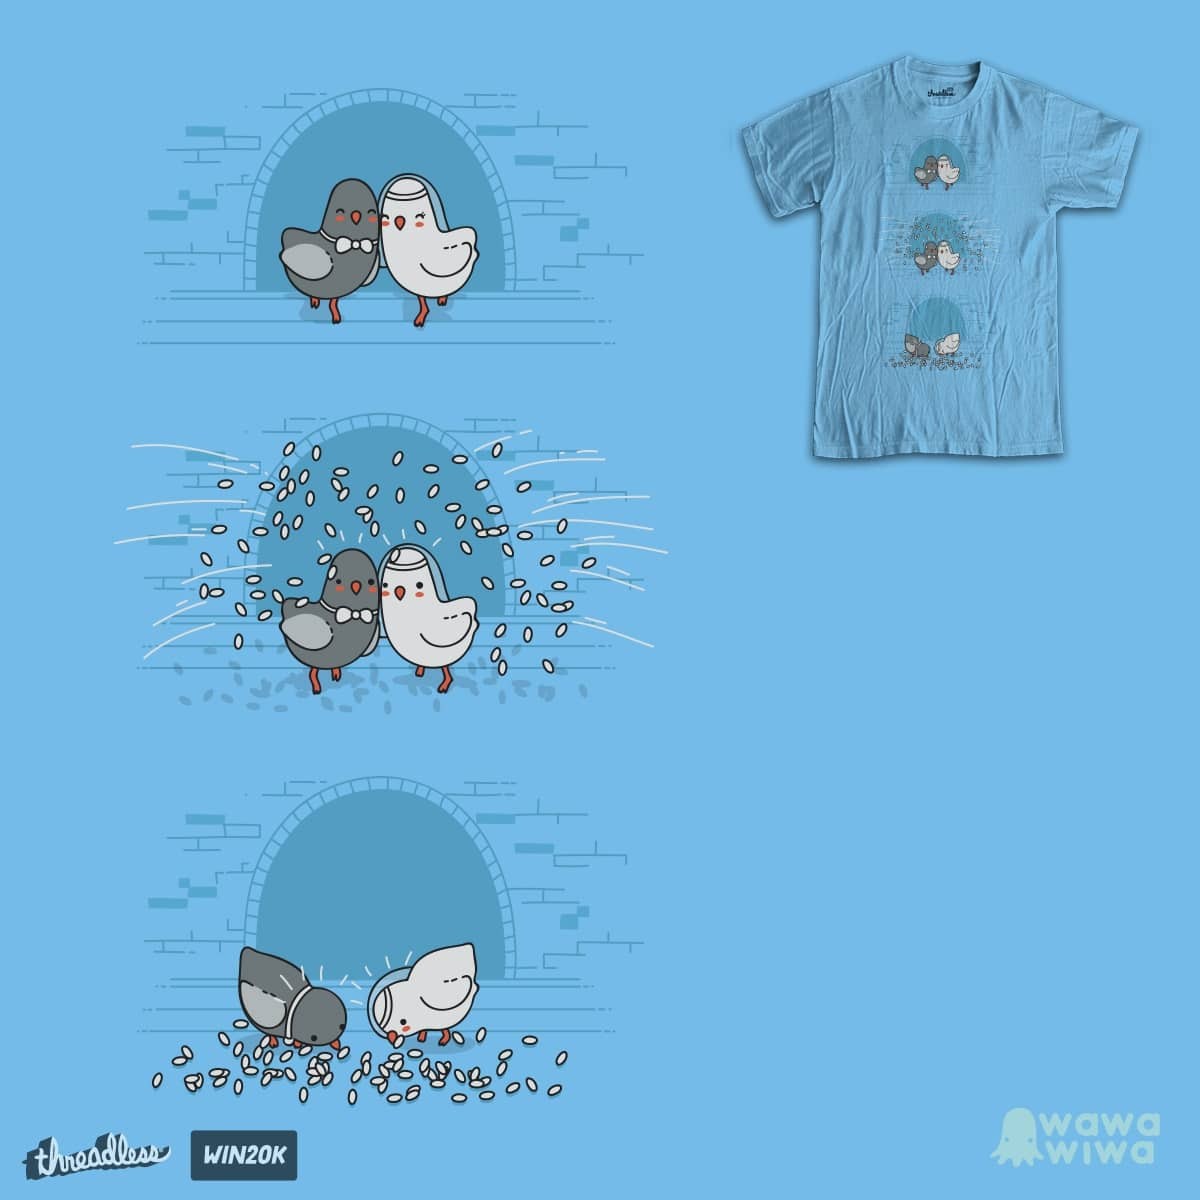 And then they blew up by Andres Colmenares on Threadless